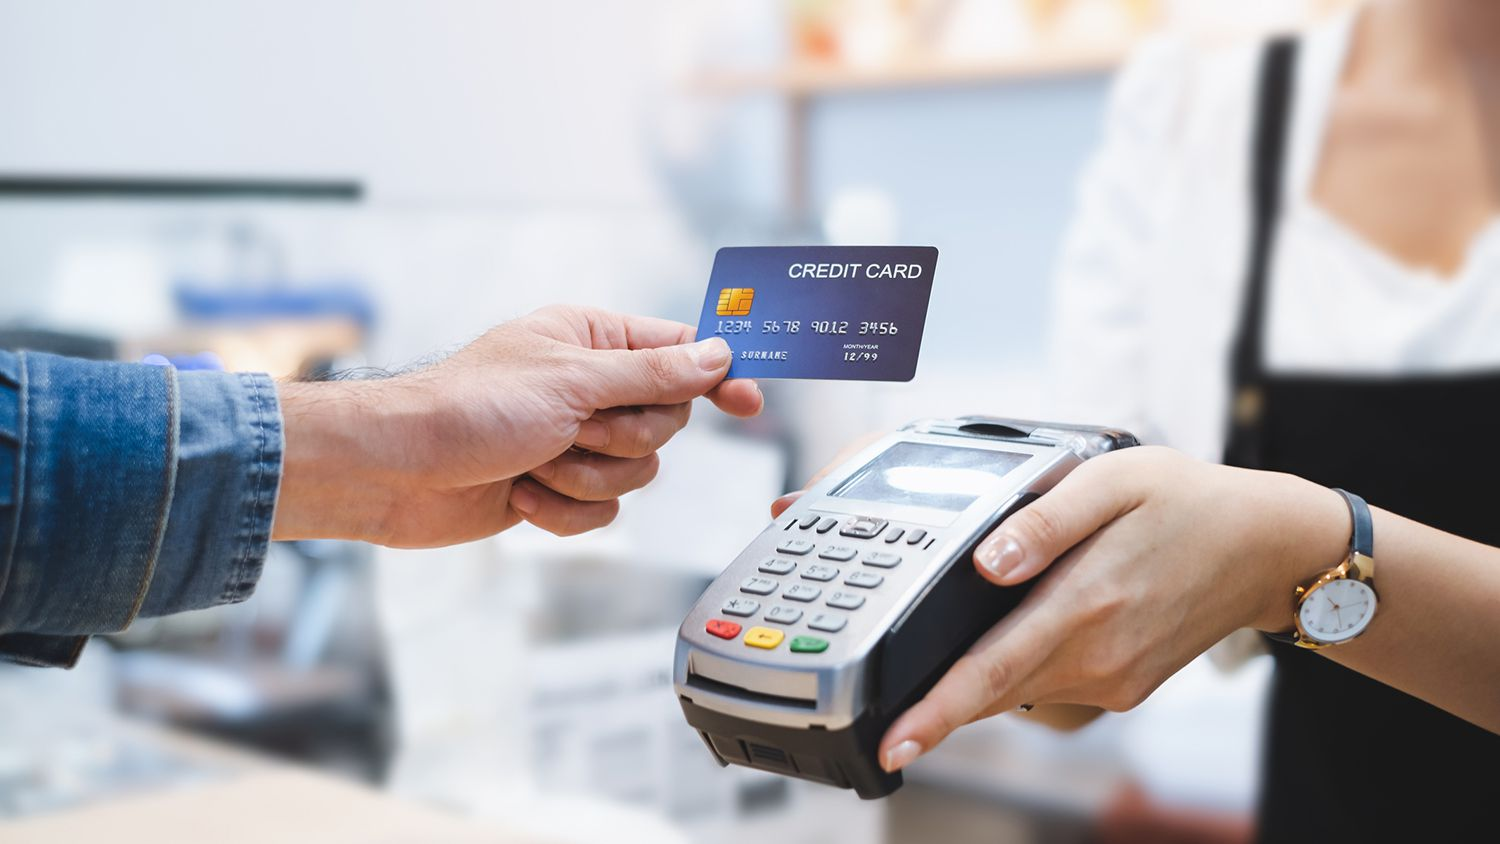 Credit Card and Debit Card Transaction